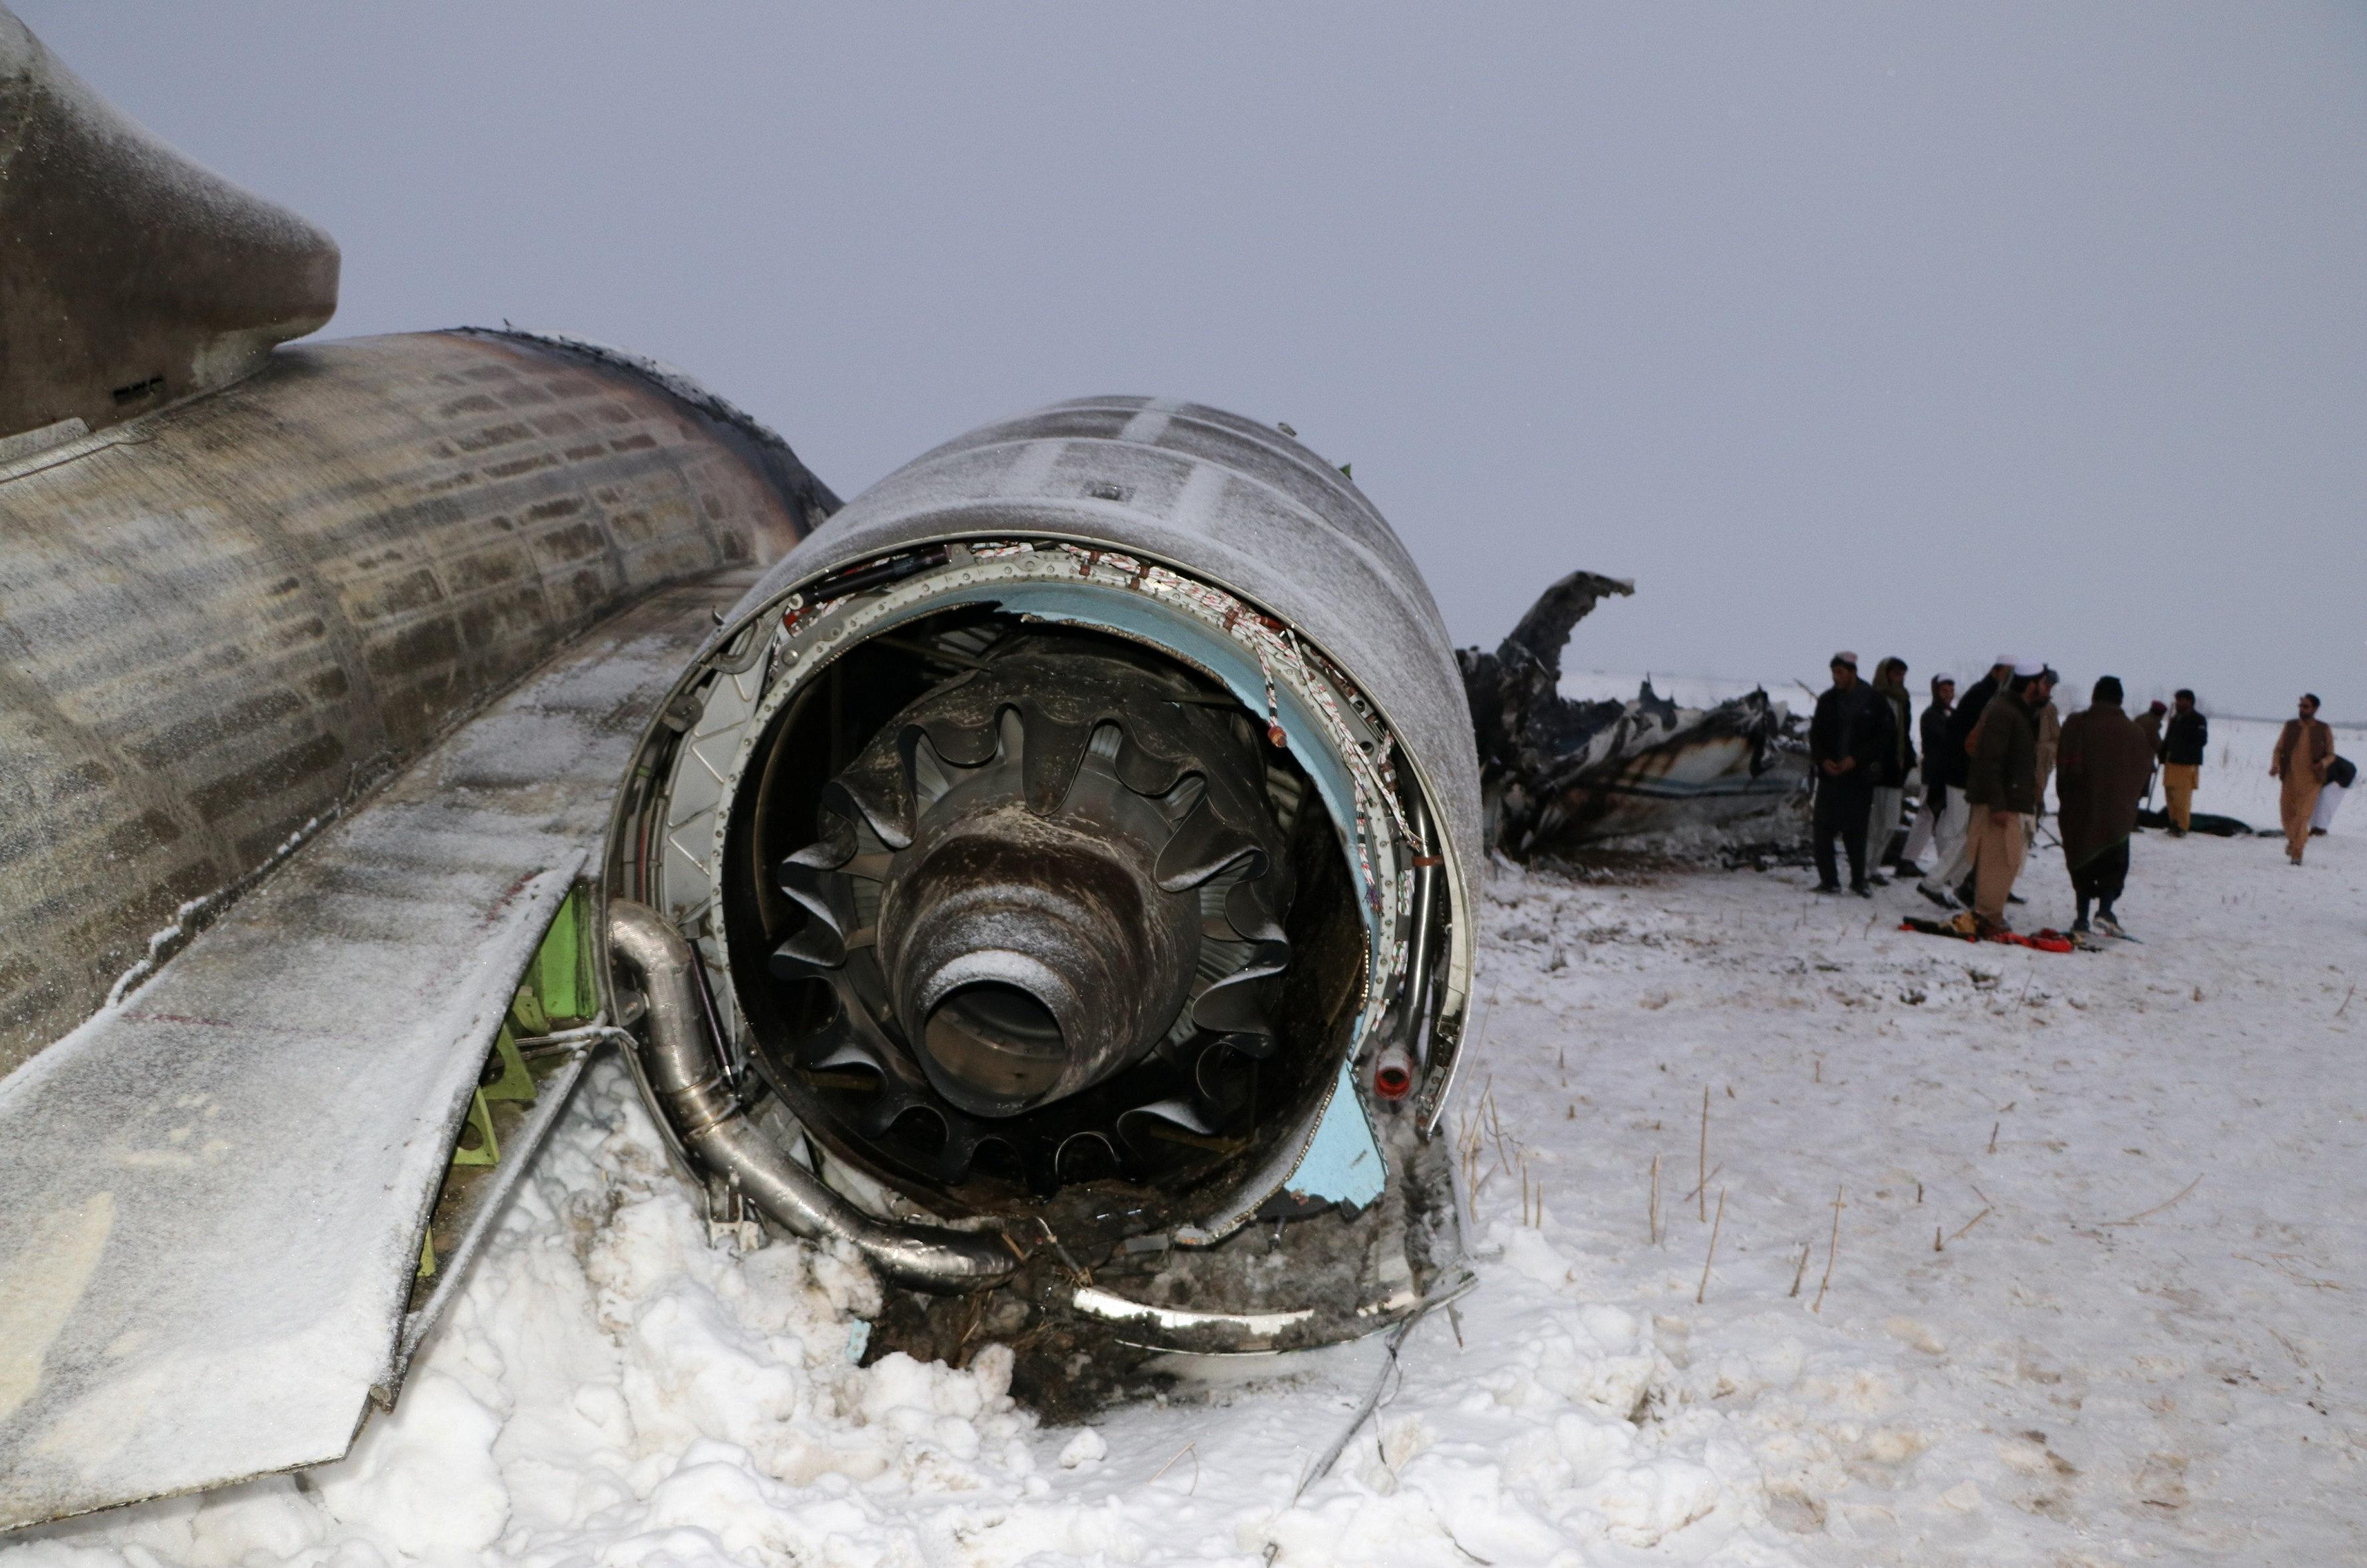 U.S. military recovers remains from Afghanistan plane crash